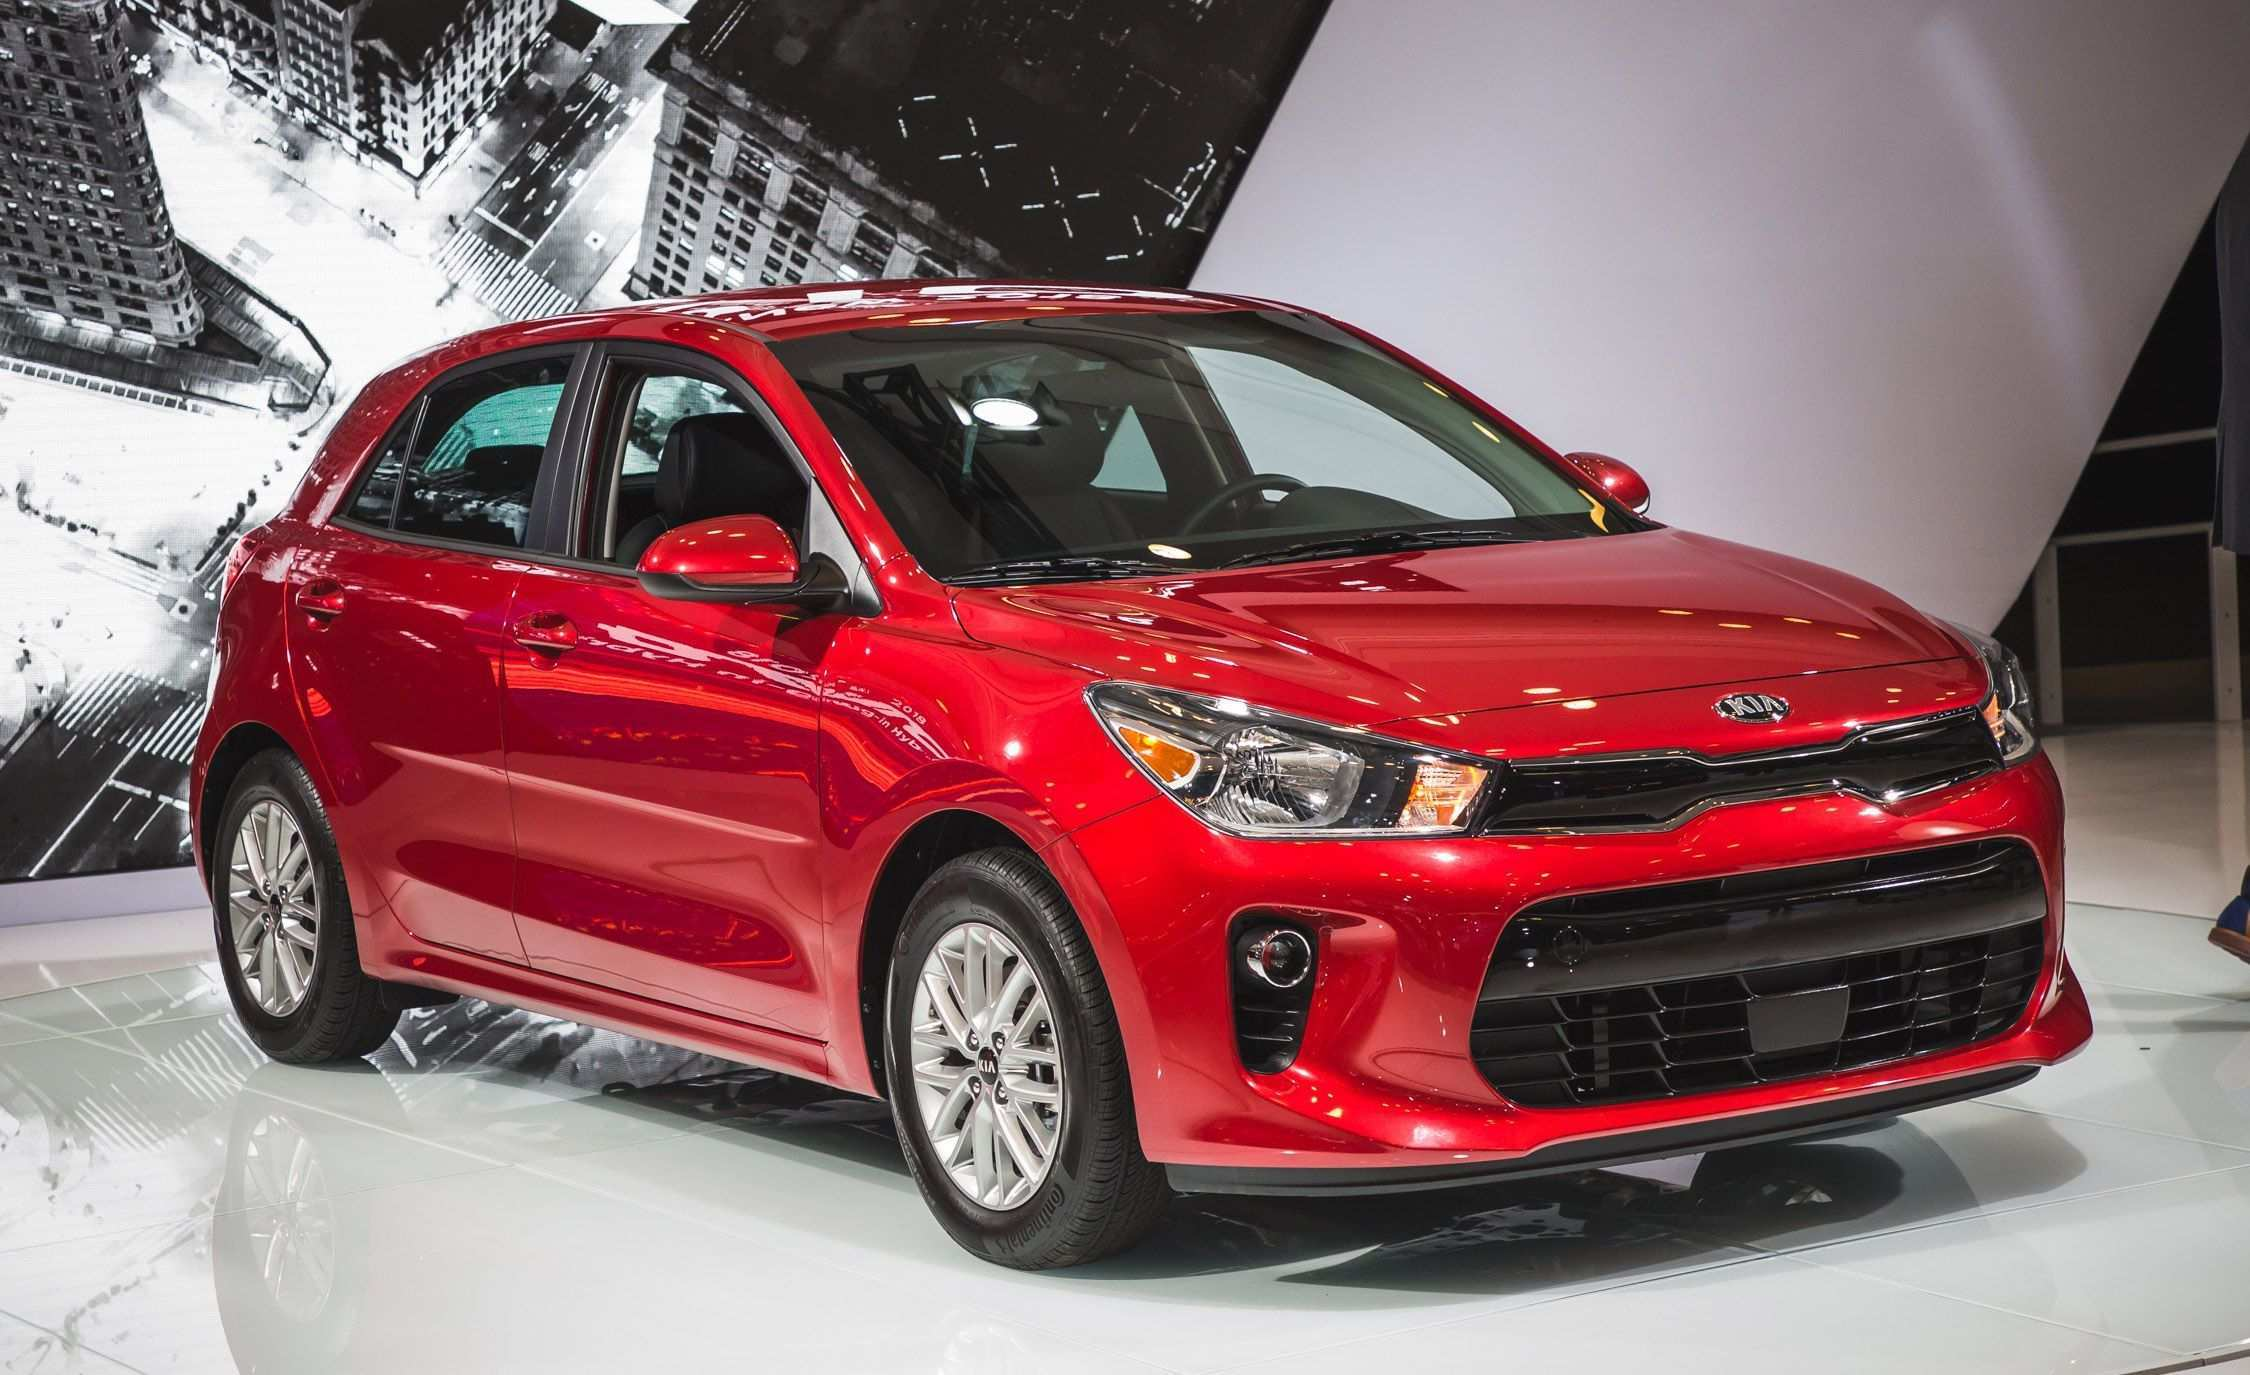 53 Best Review Kia Rio Lx 2020 Configurations for Kia Rio Lx 2020